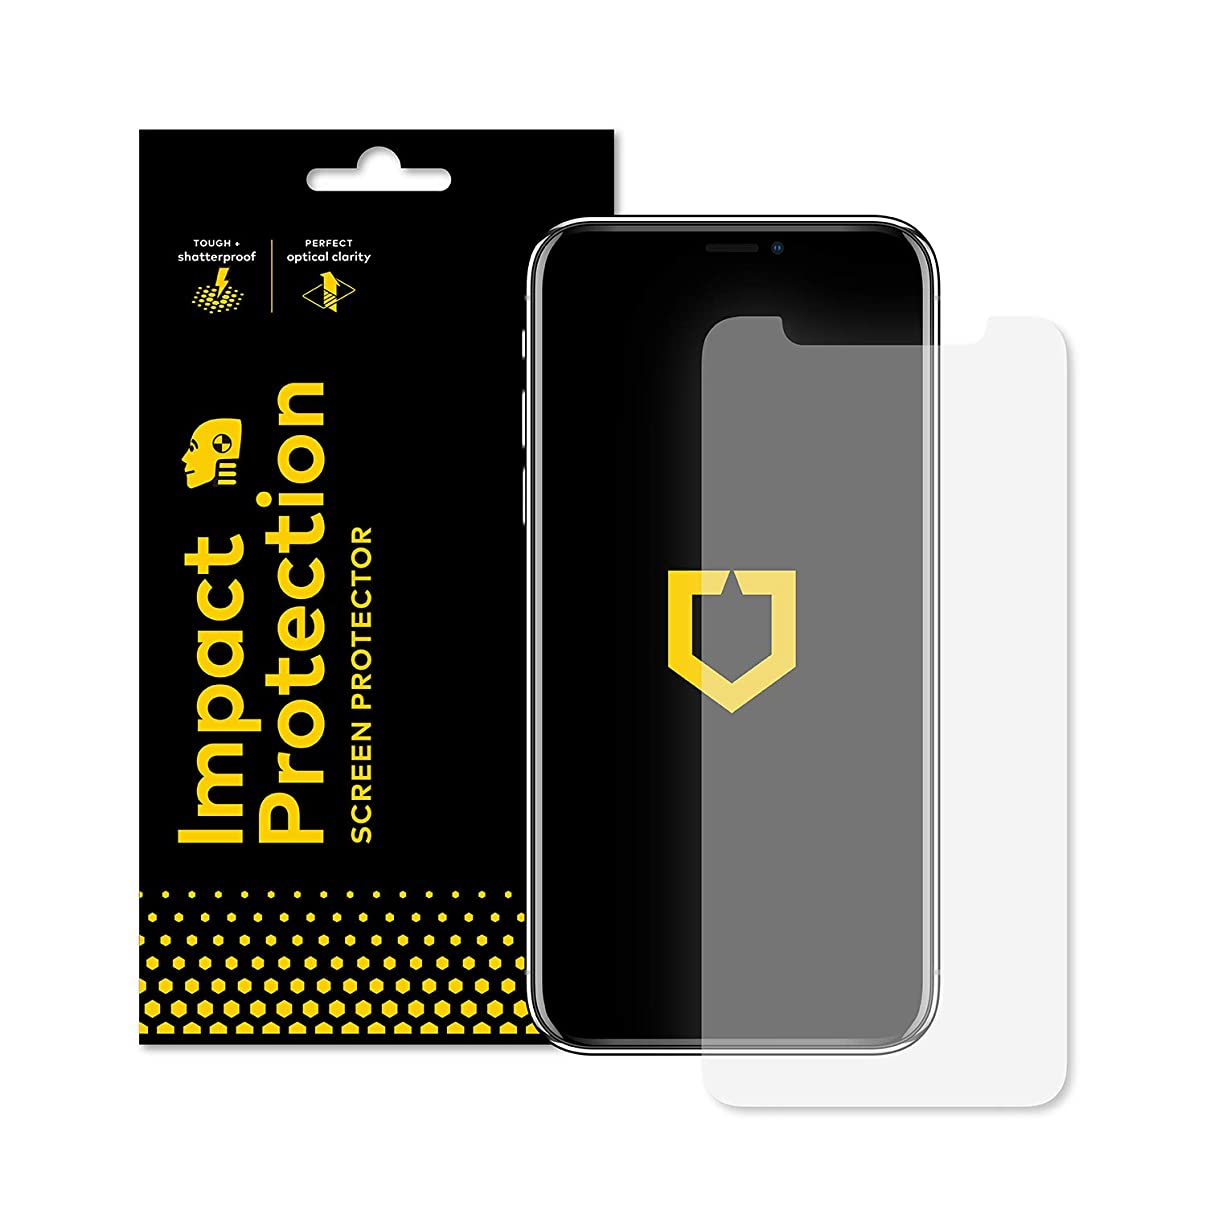 RhinoShield Screen Protector for iPhone XR [Impact Protection] | High Strength Impact Damping/Dispersion Technology - Clear and Scratch/Fingerprint Resistant Screen Protection